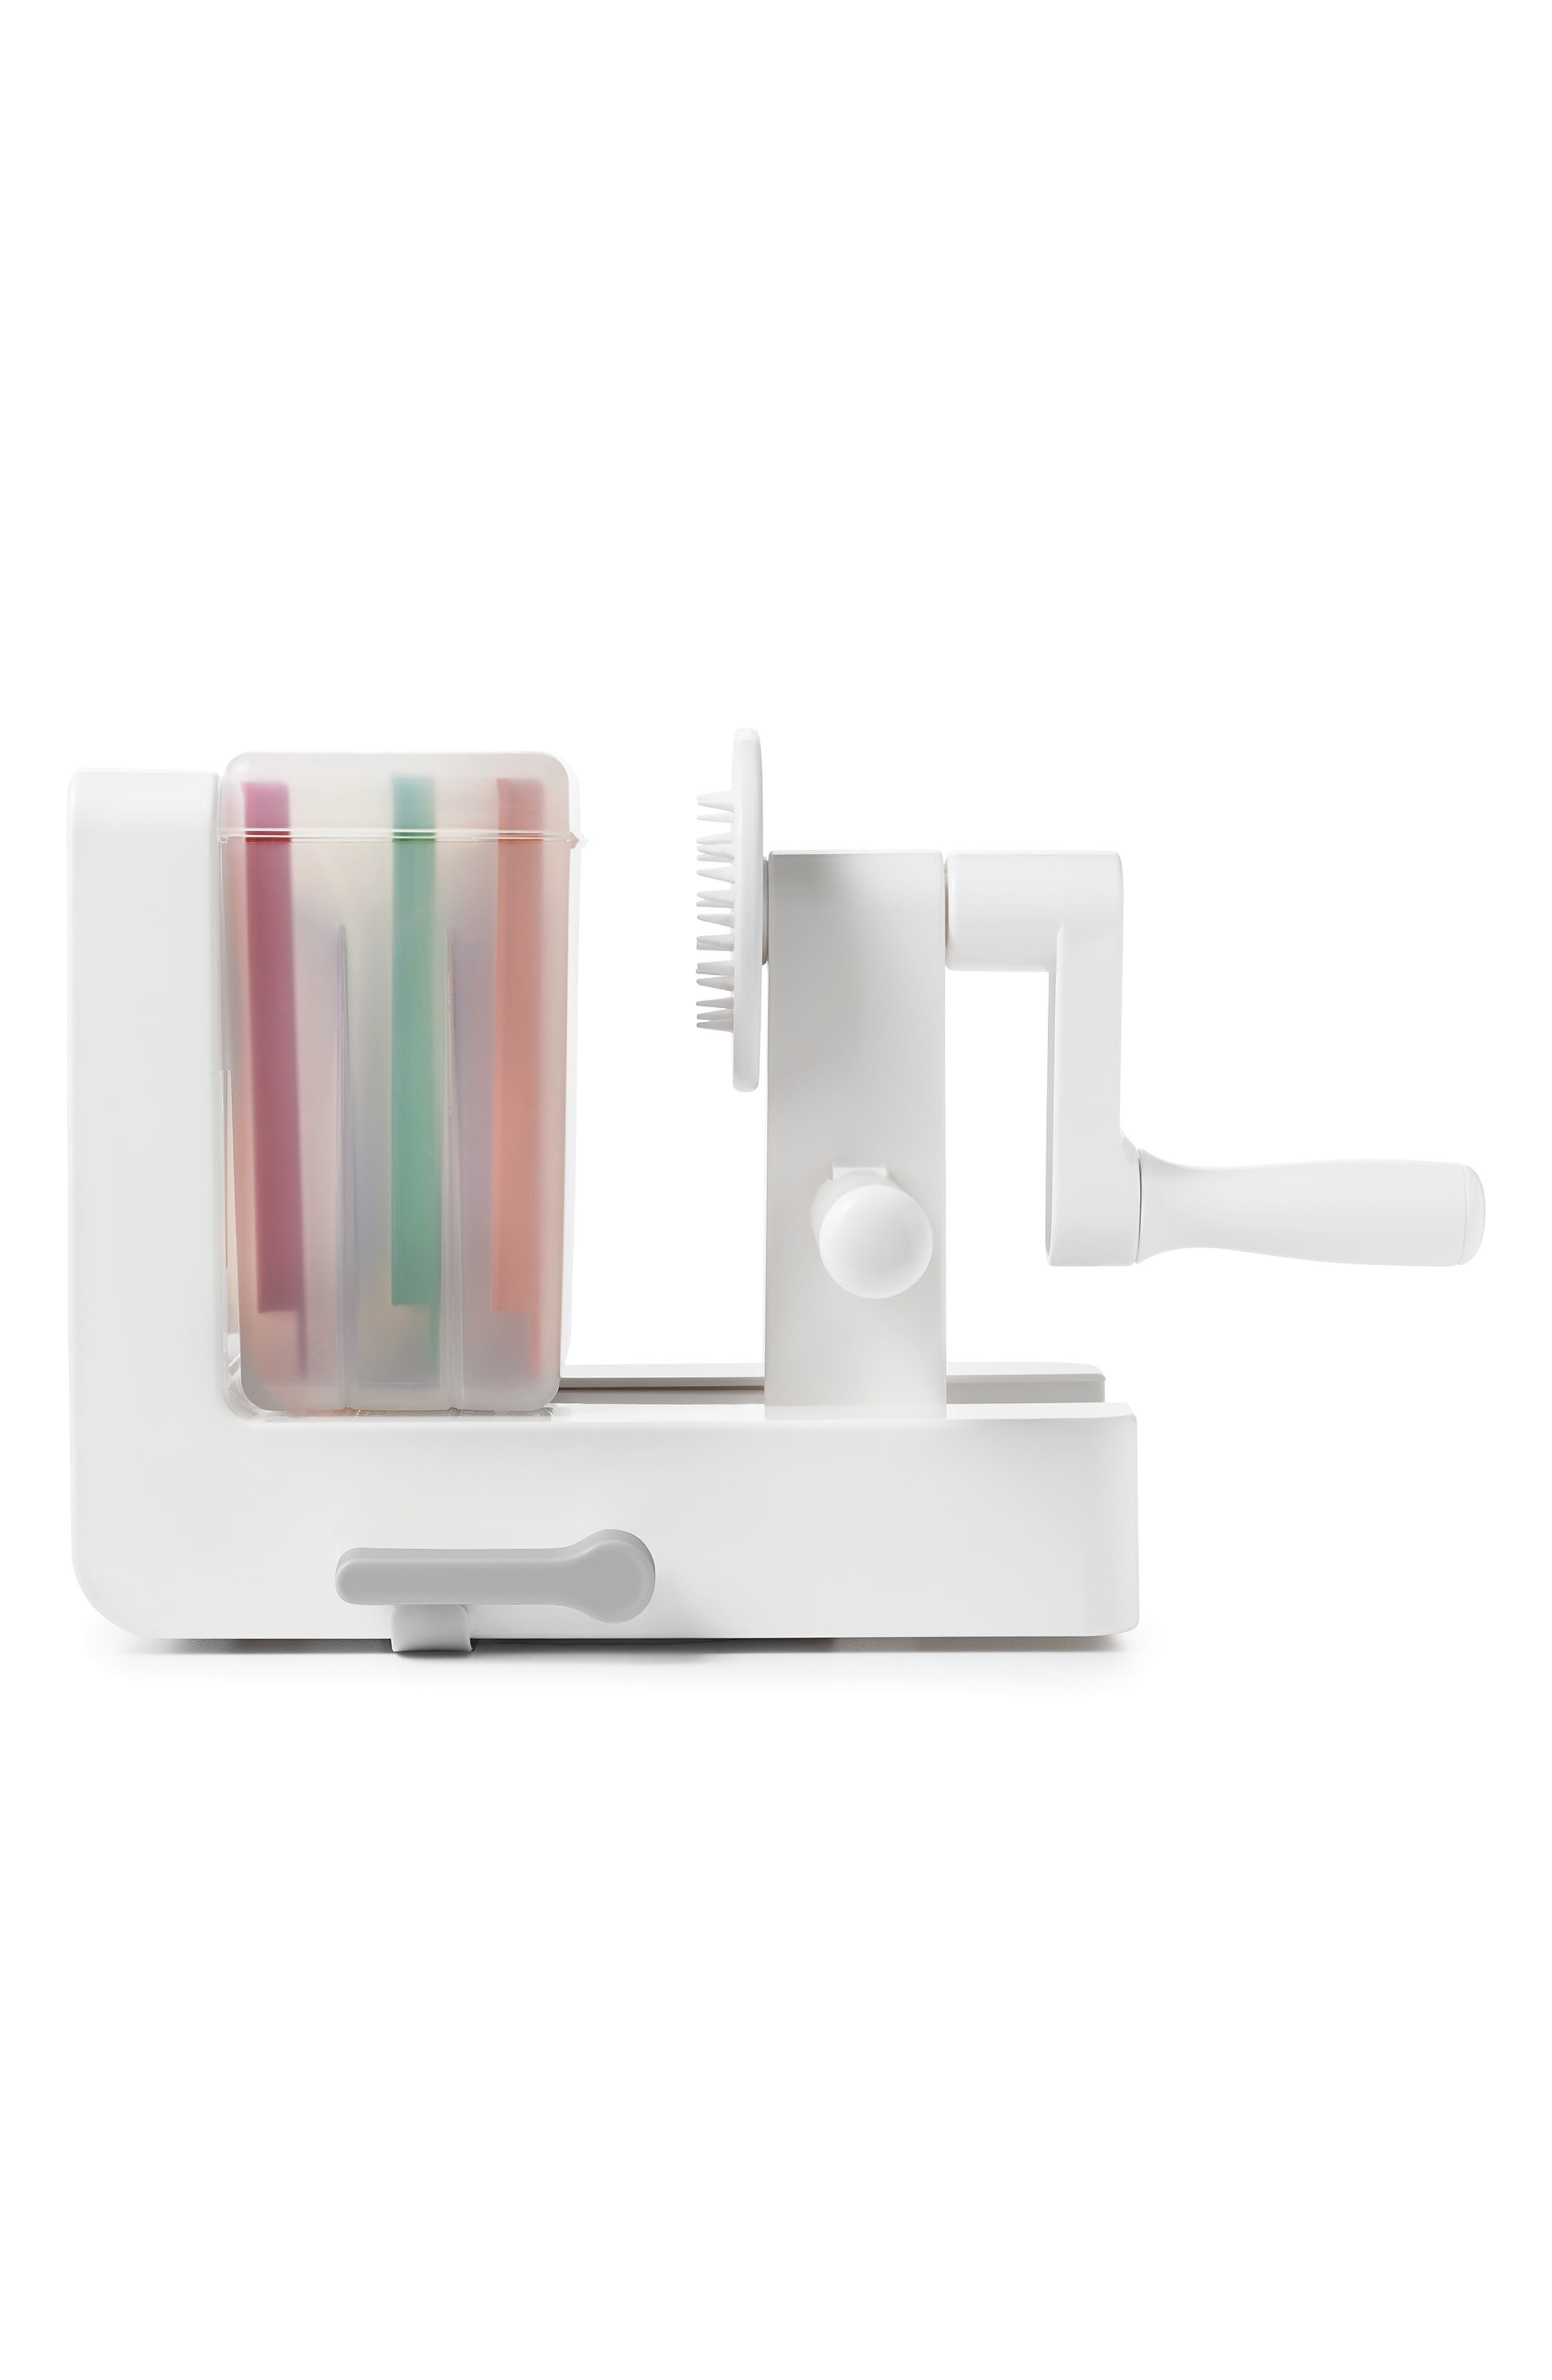 Image of Oxo Good Grips Tabletop Spiralizer